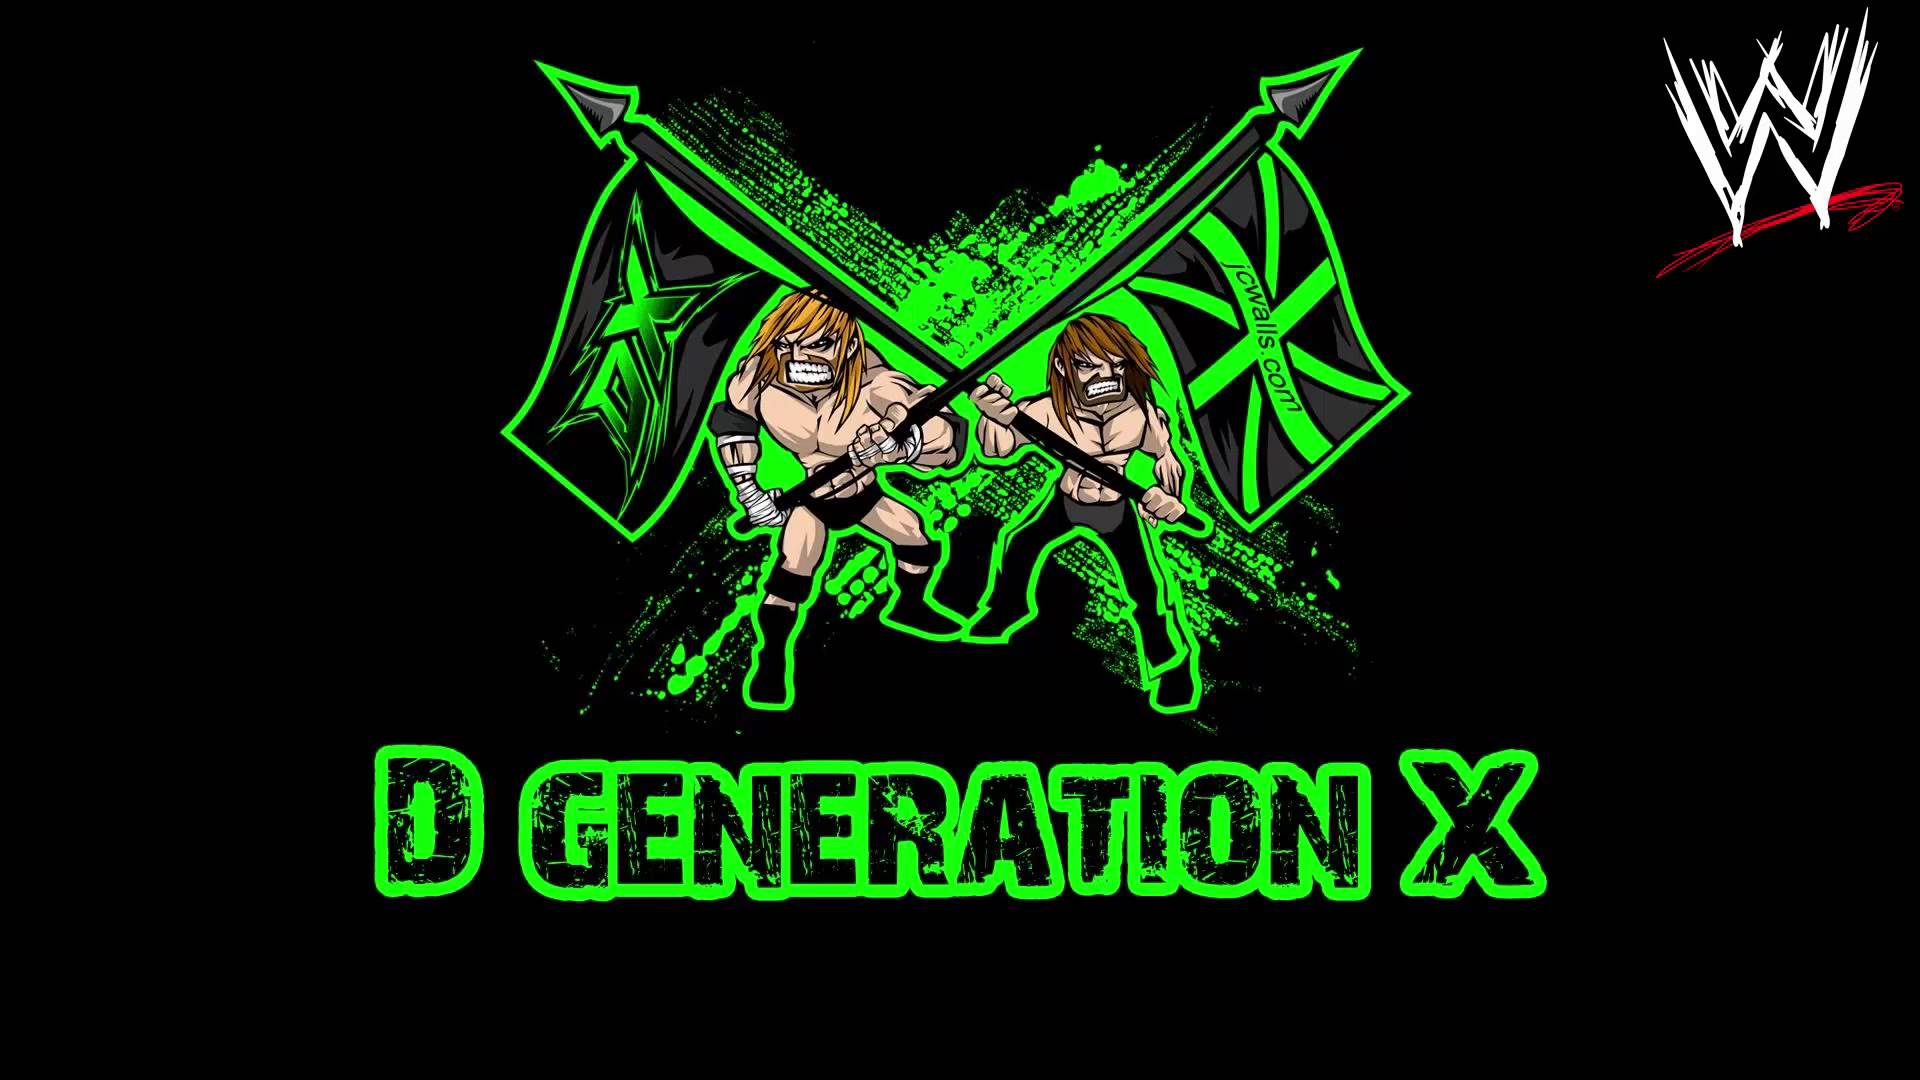 Offenderman420 Images D Generation X 6310 HD Wallpaper And Background Photos